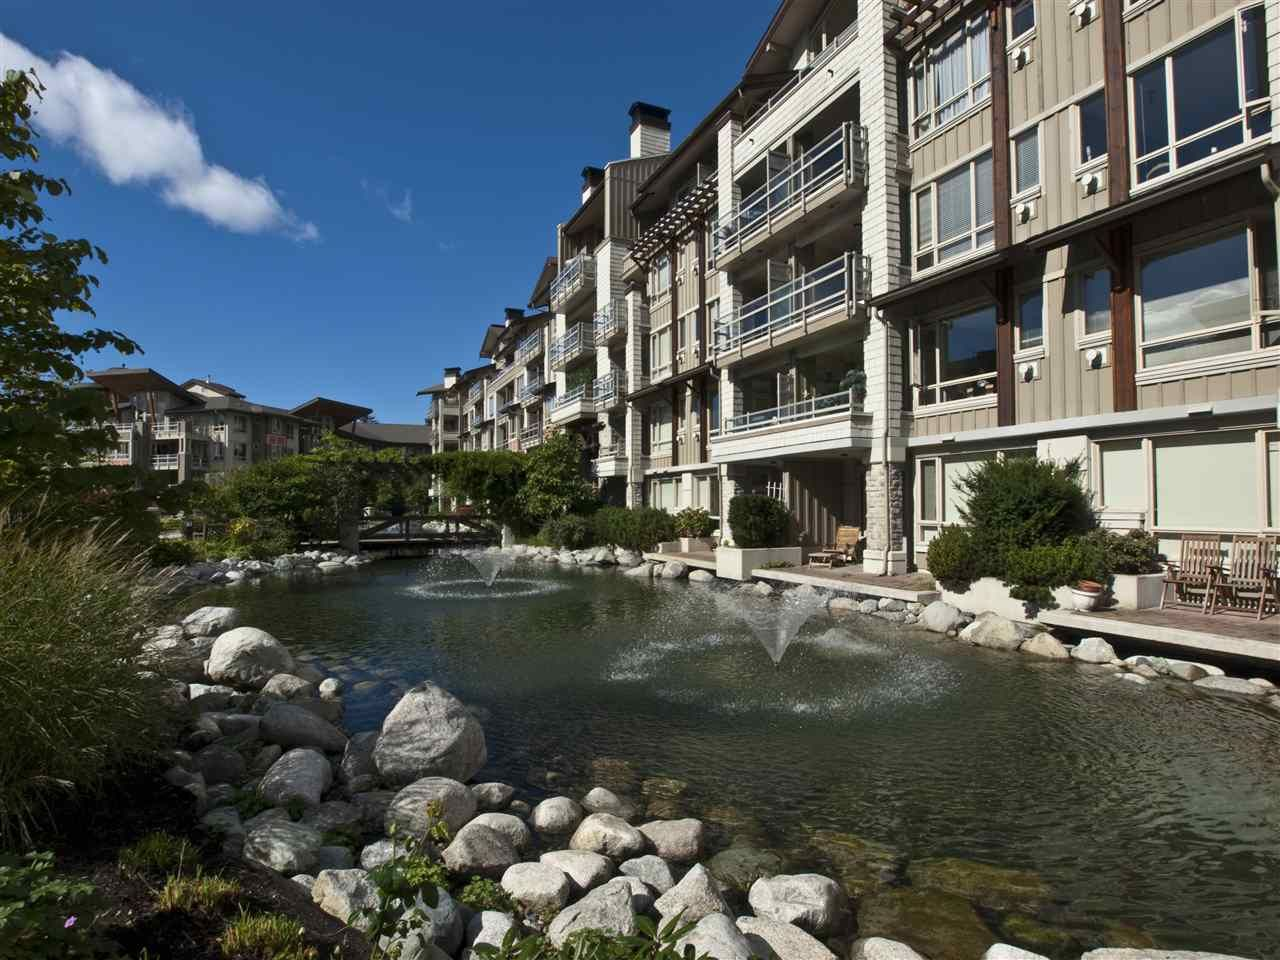 """Main Photo: 514 580 RAVEN WOODS Drive in North Vancouver: Roche Point Condo for sale in """"Seasons at Raven Woods"""" : MLS®# R2436962"""